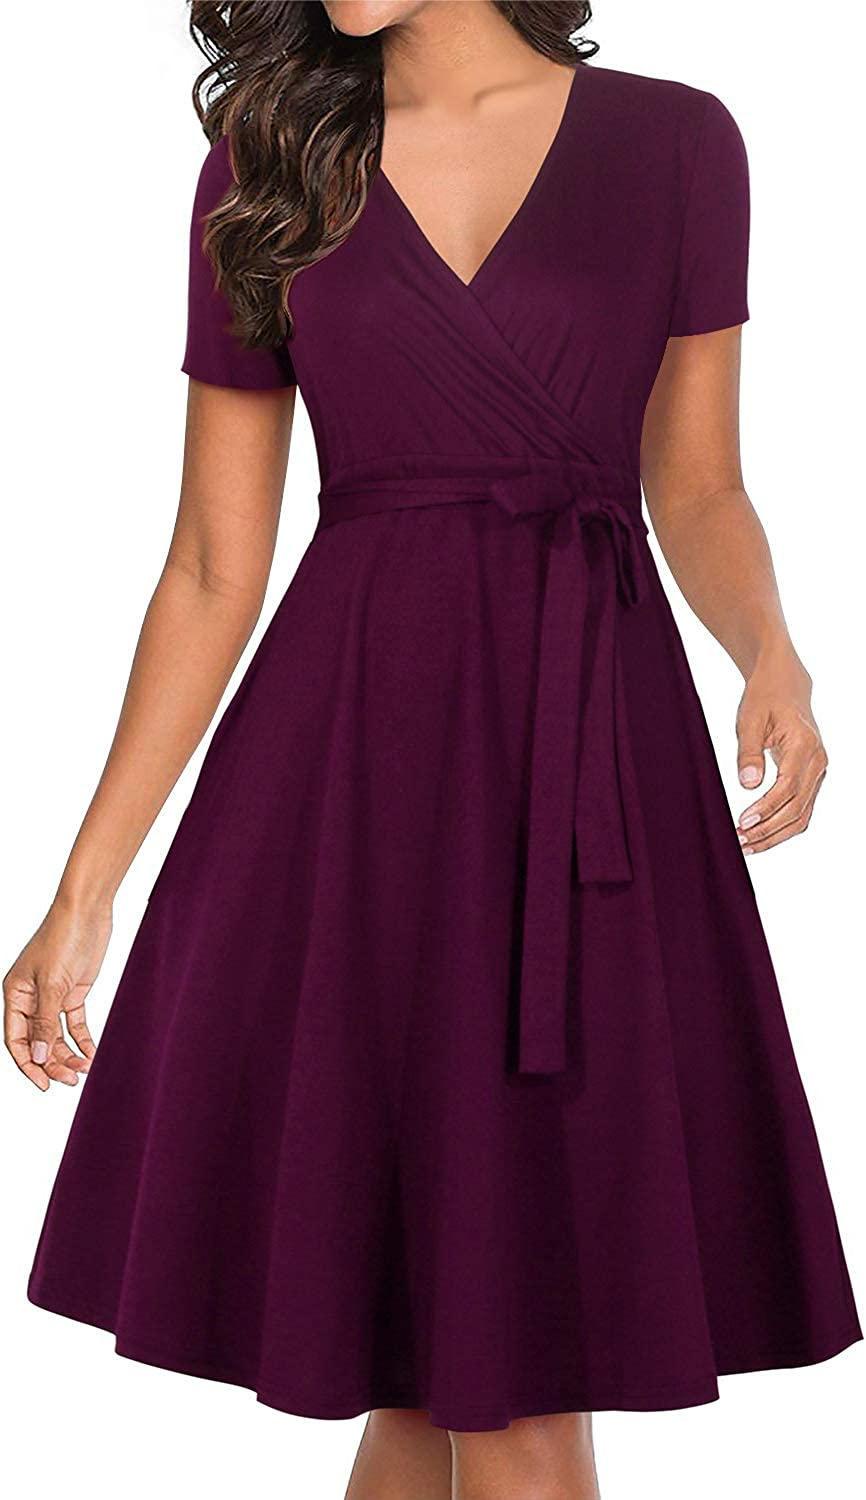 Manydress Women's V Neckline Fit and Flare Vintage Swing Midi Cocktail Party Wrap Dress with Pocket